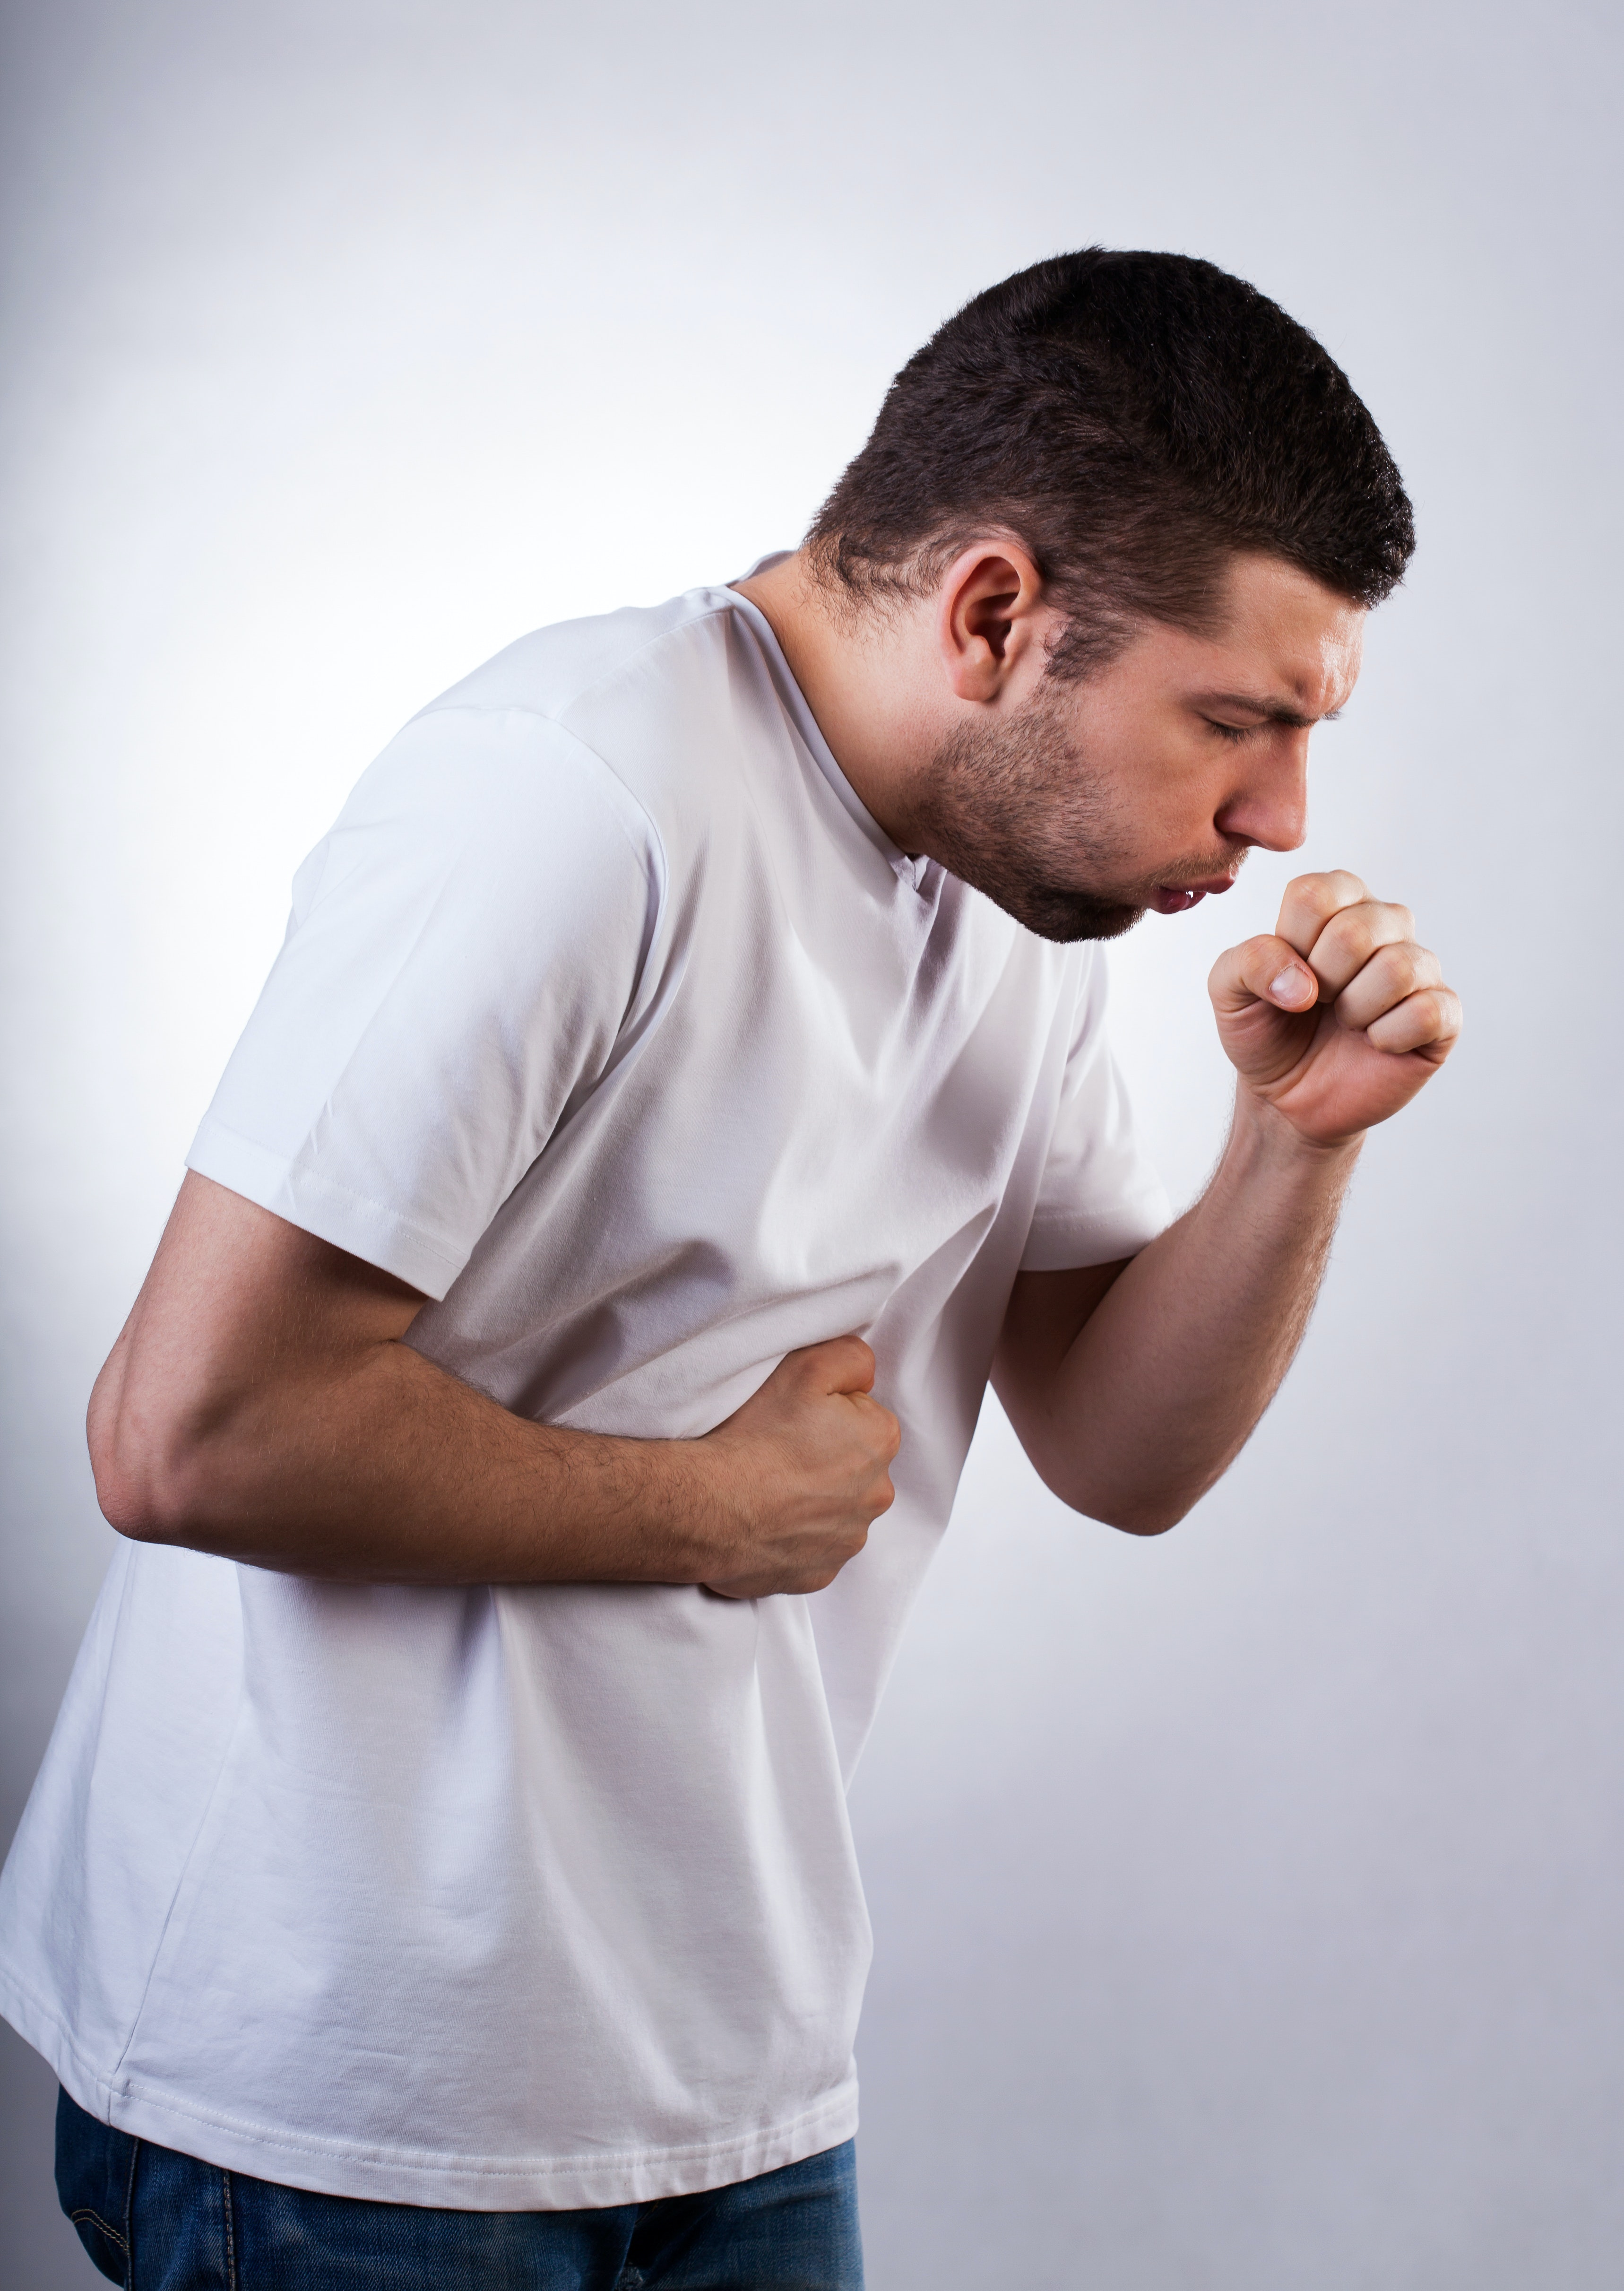 An image depicting a person suffering from coughing with a whooping sound symptoms